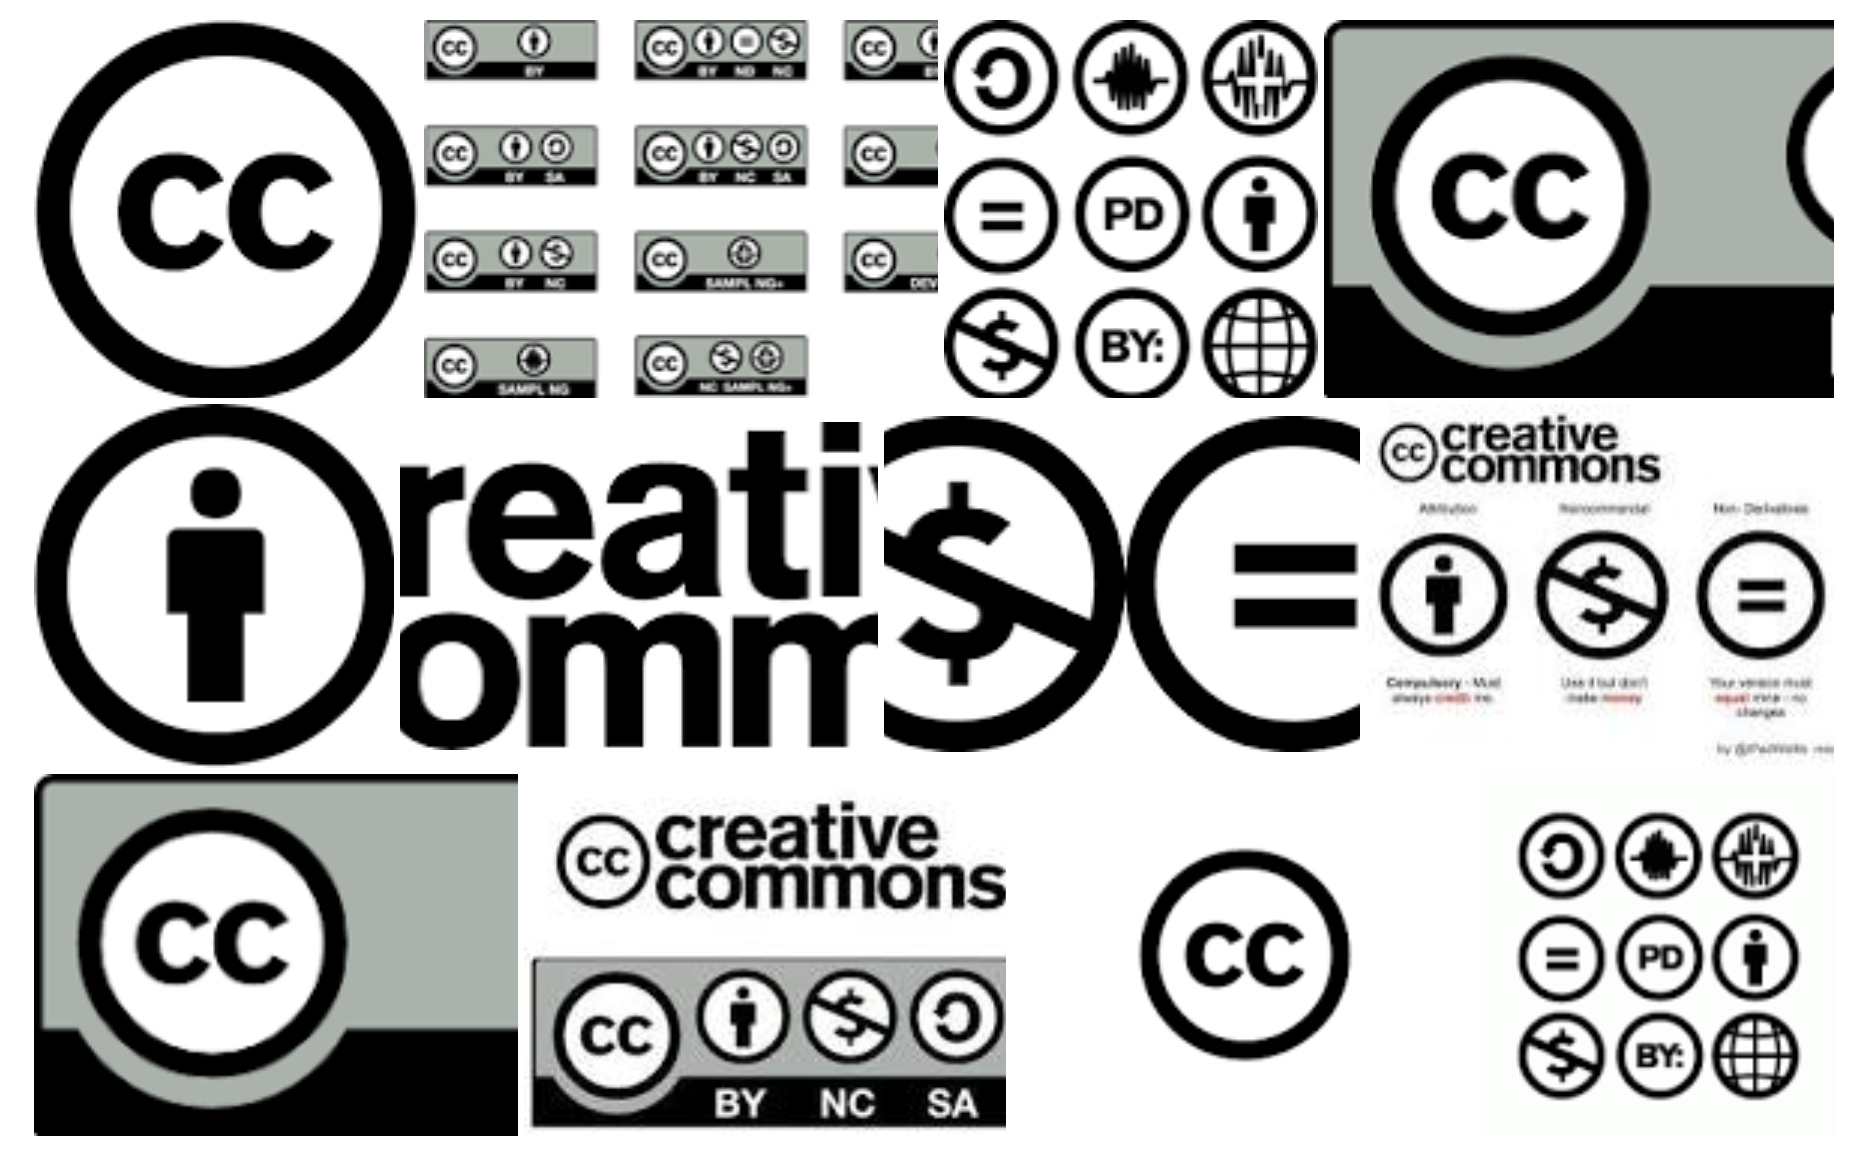 Screenshot von Google-Bildersuche nach Creative Commons Logos